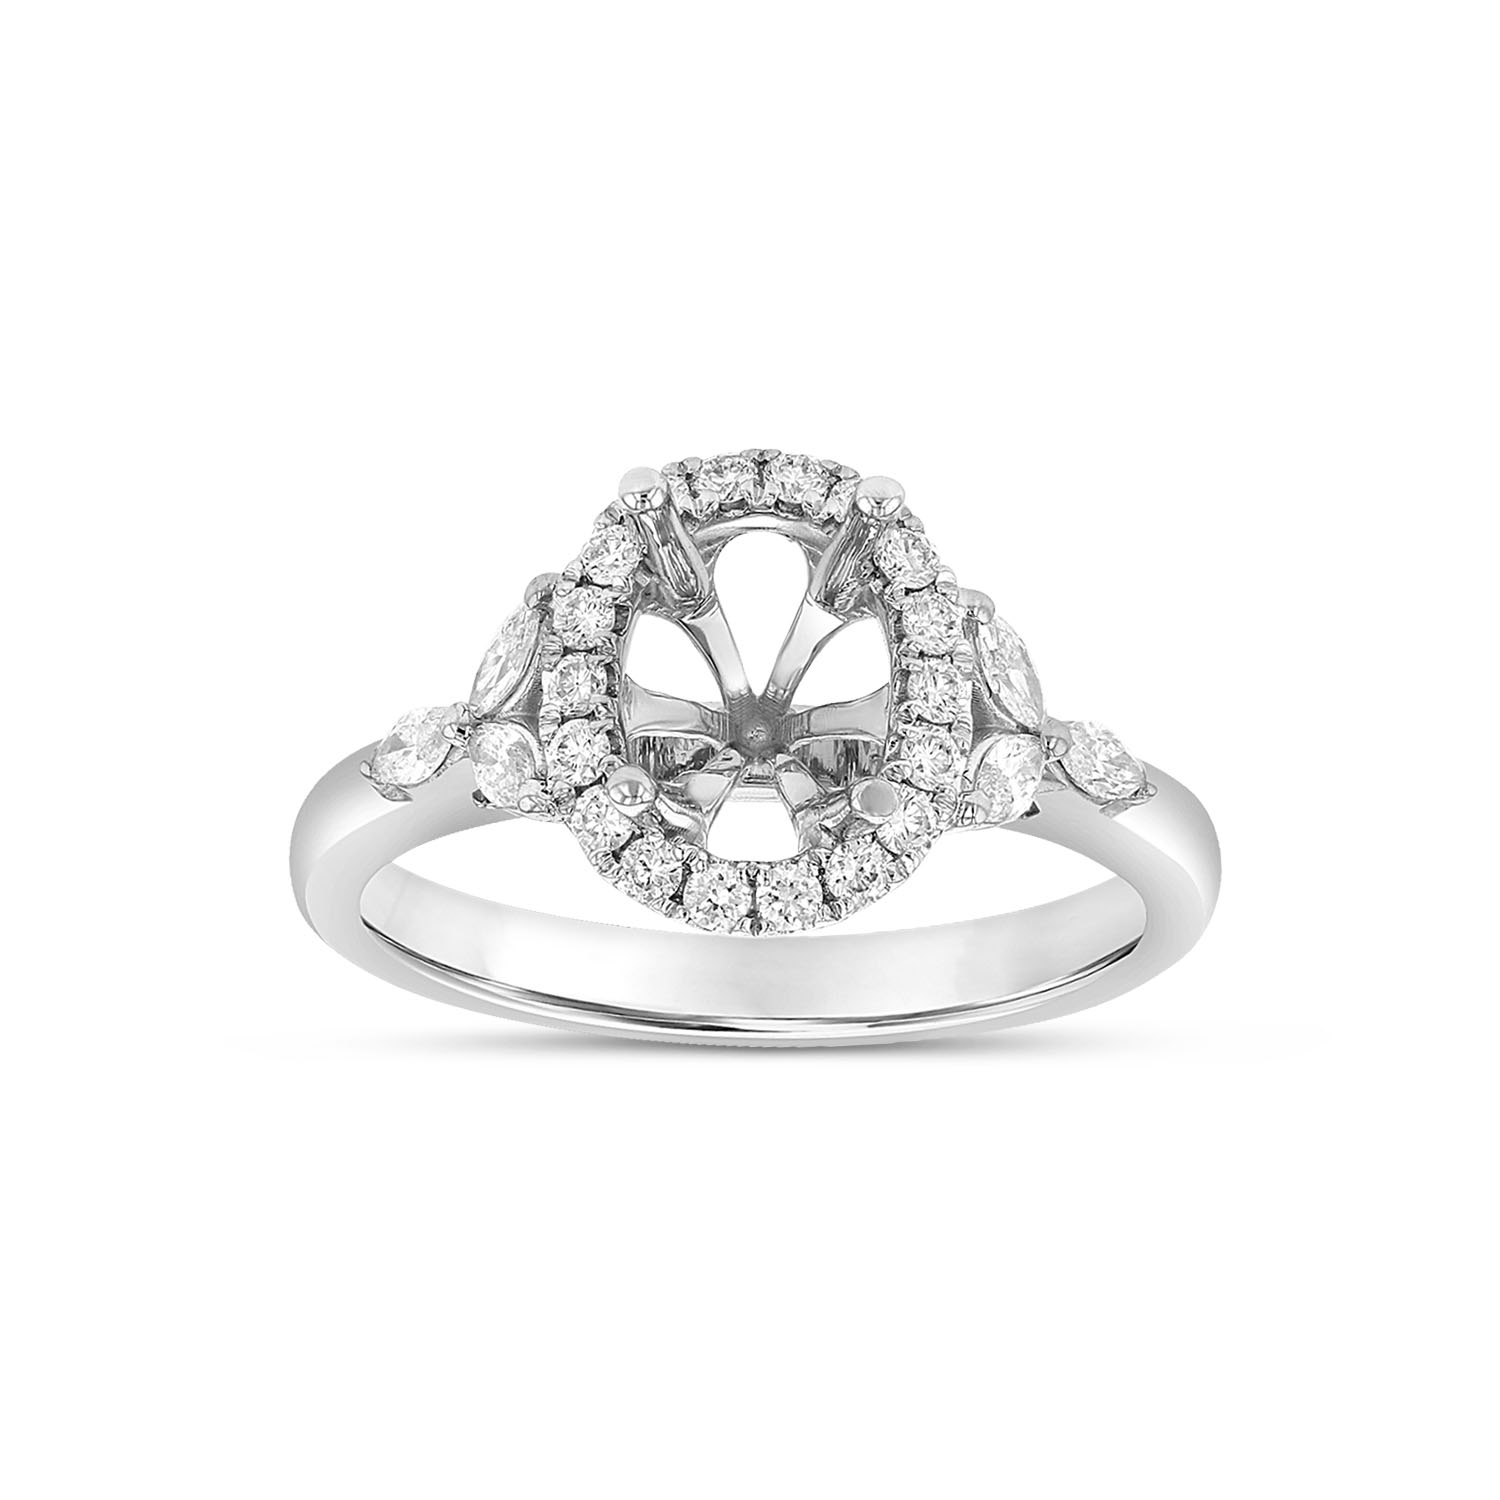 View 0.43ctw Diamond Oval Shaped Semi Mount in 18k White Gold